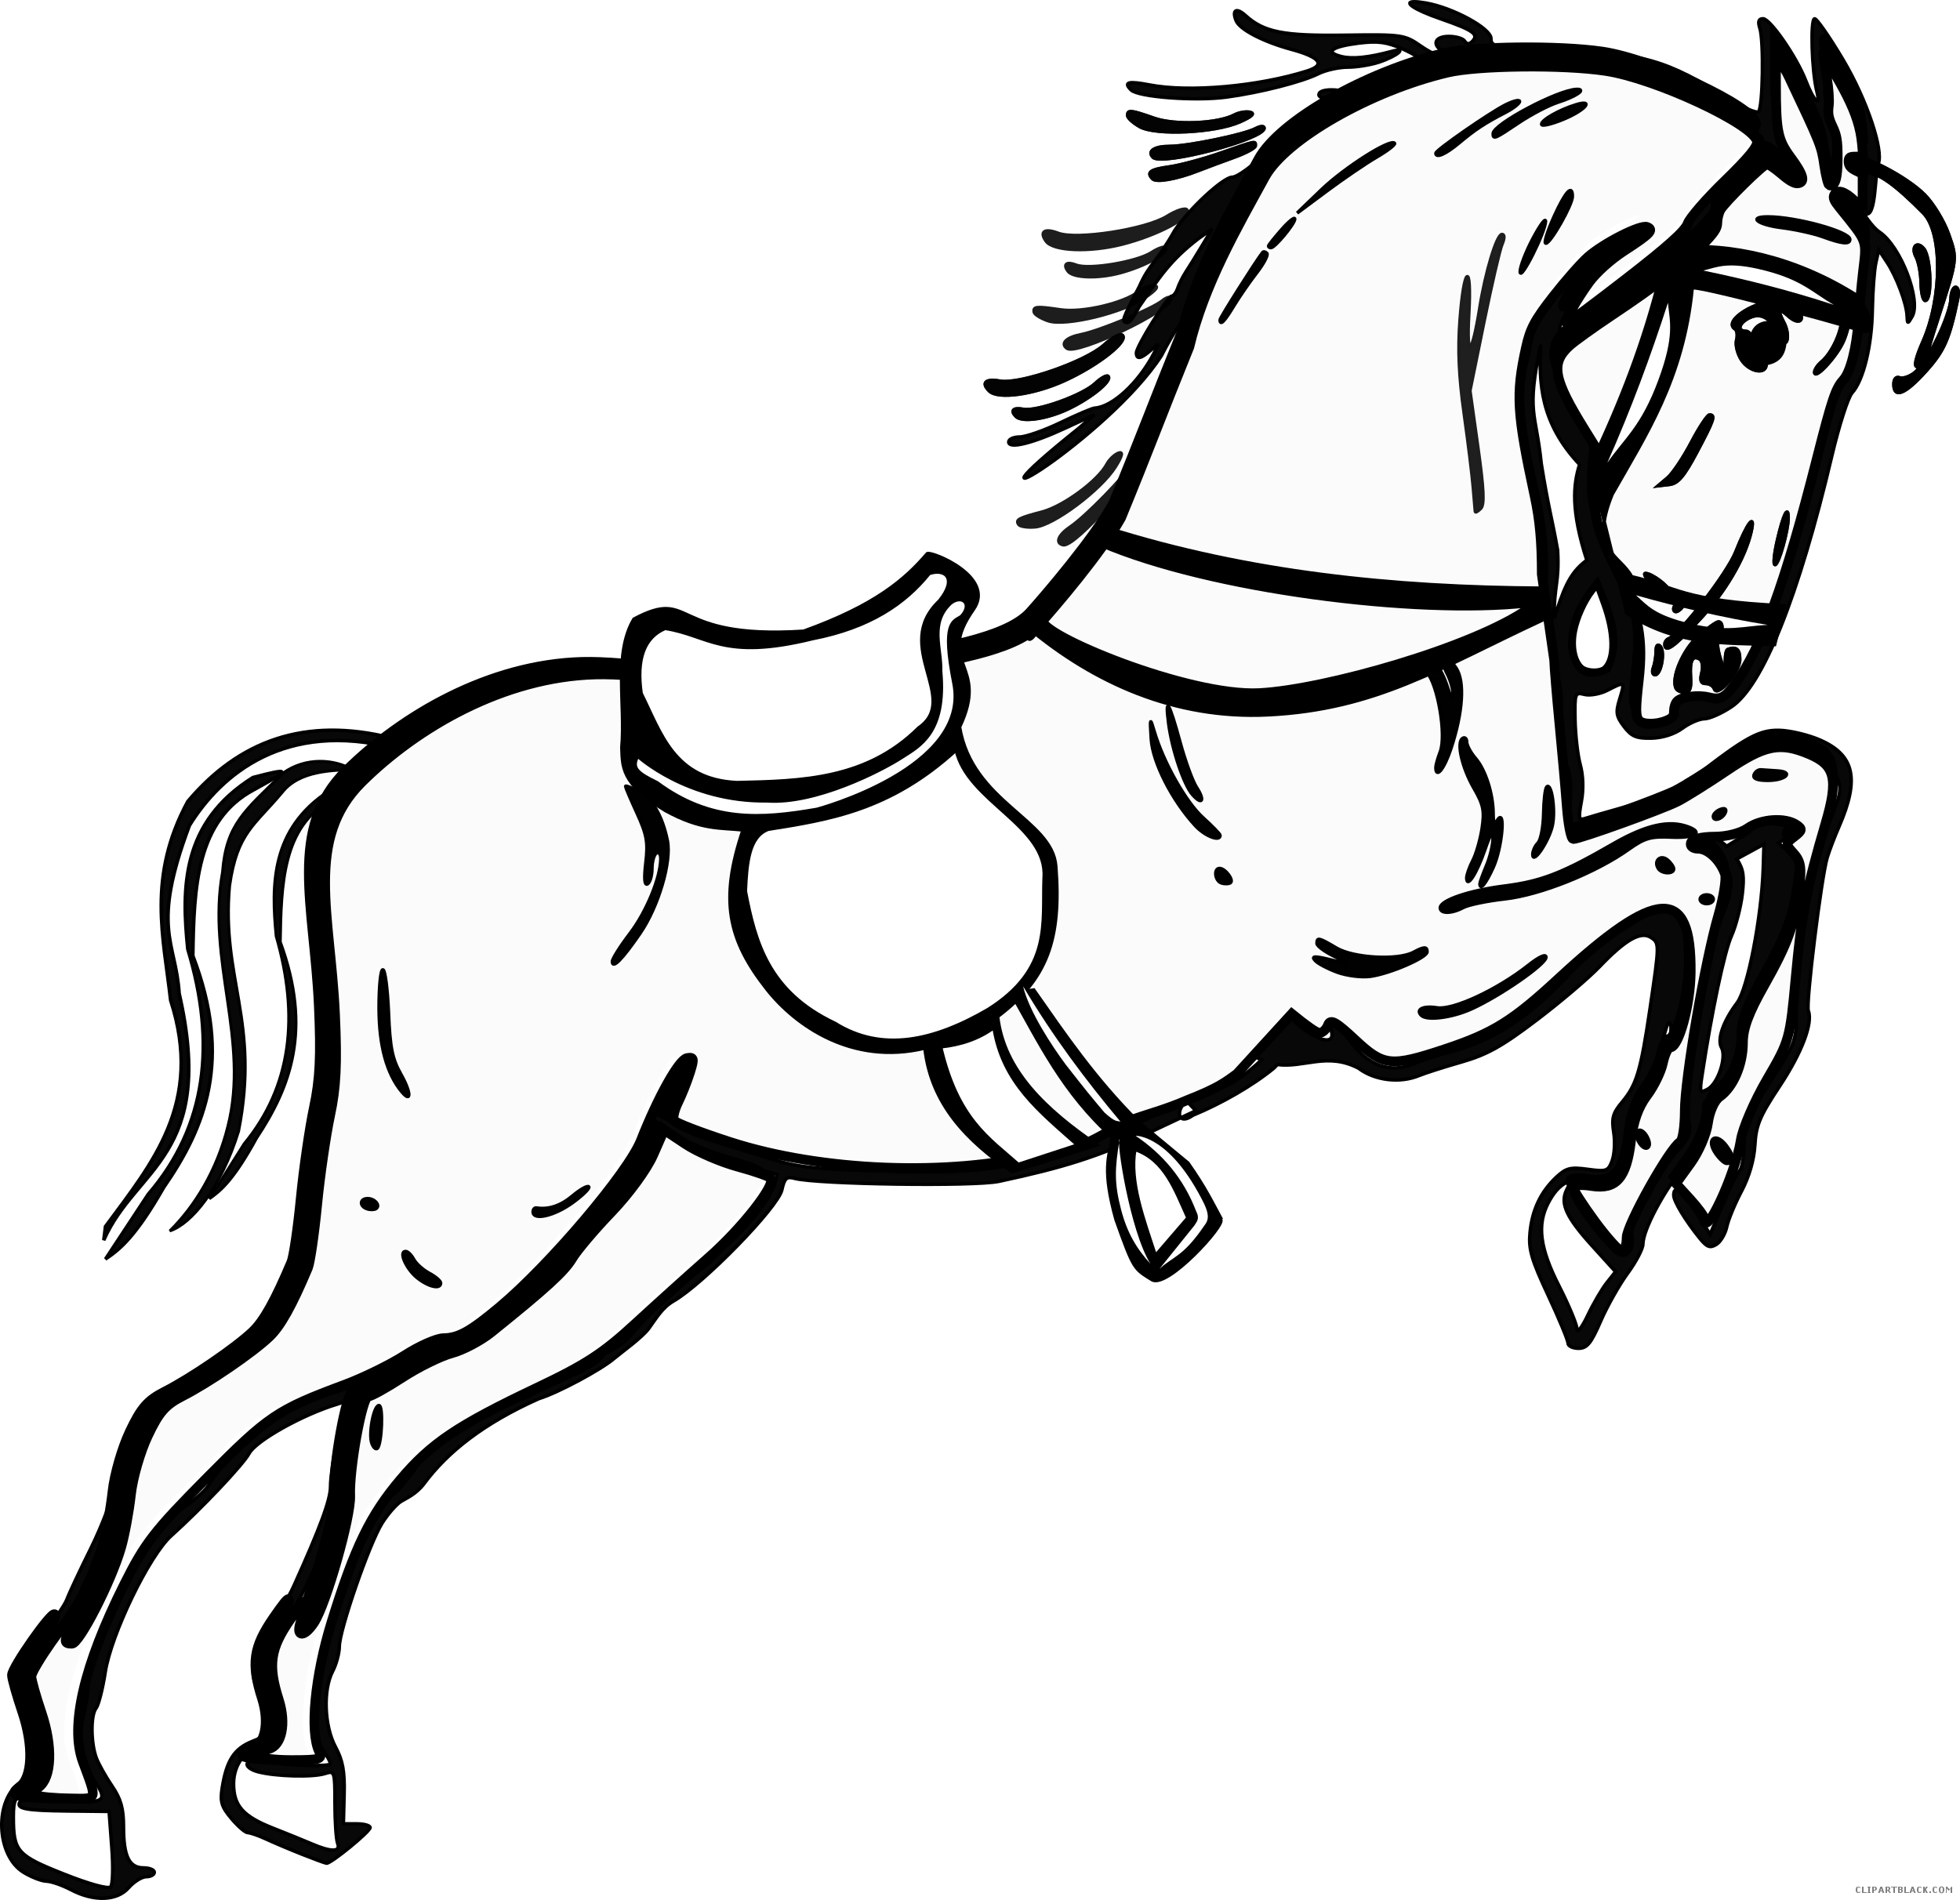 Jumping clipart black and white. Horse clipartblack com animal